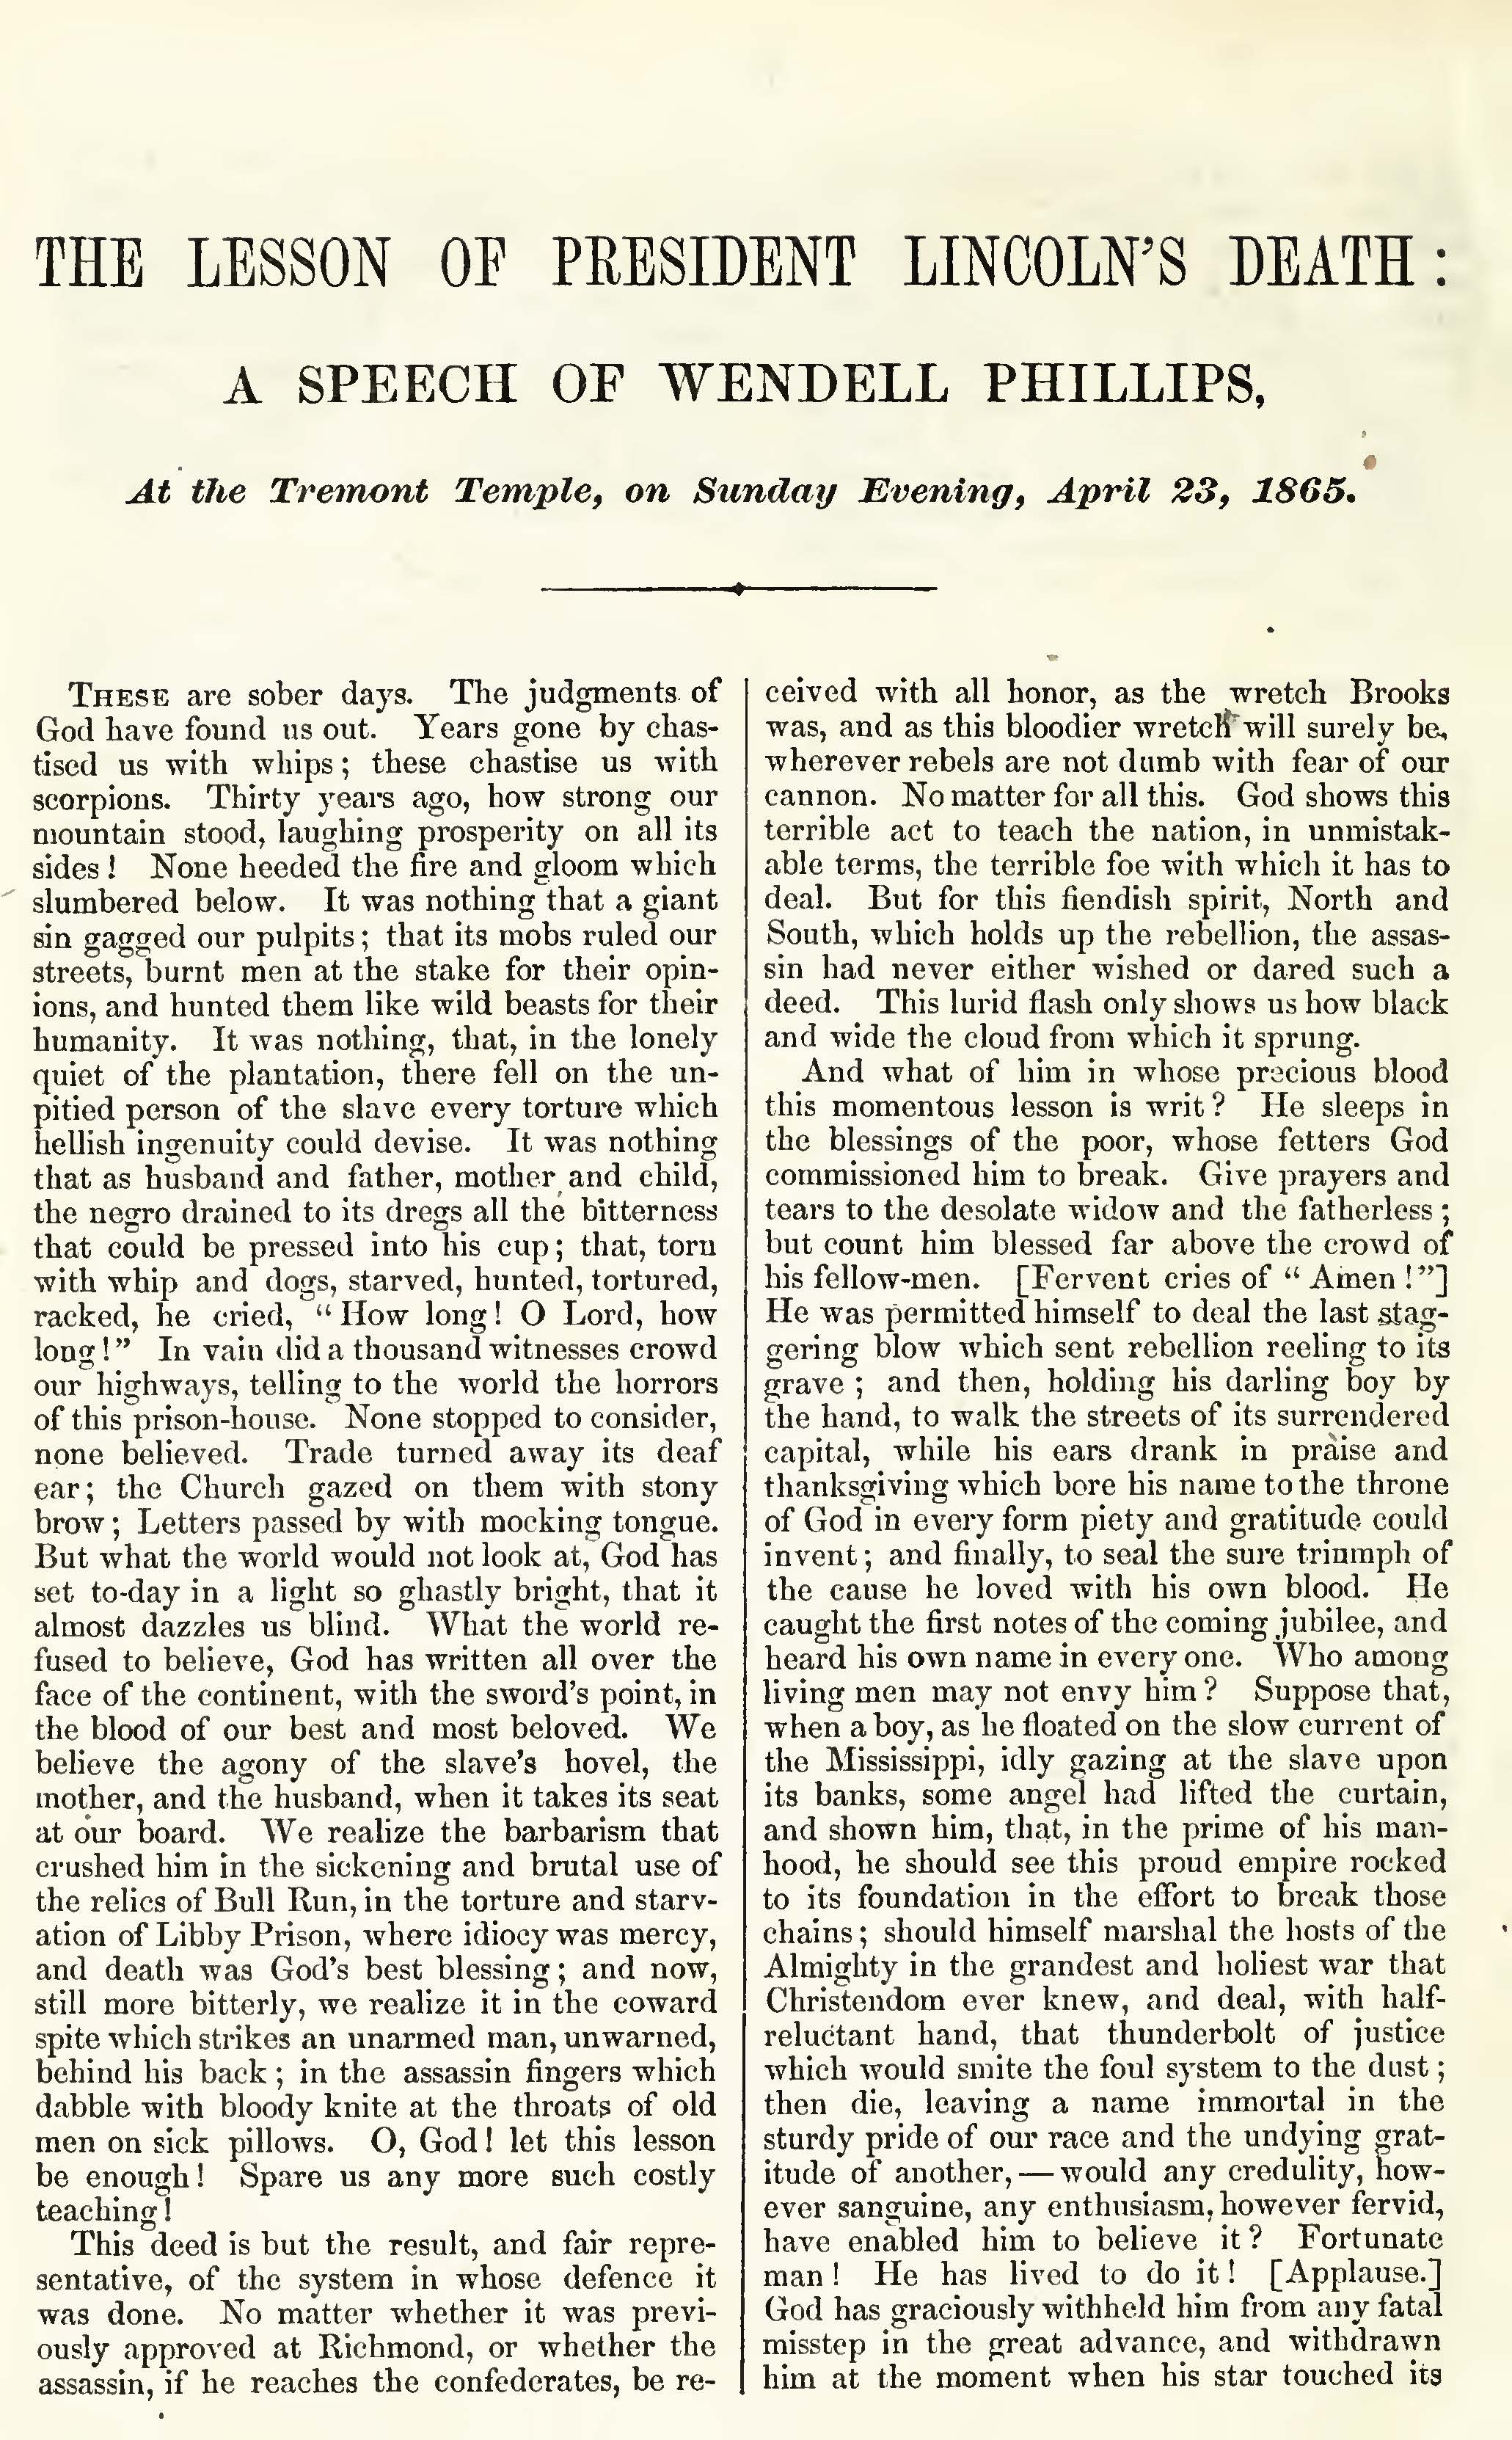 The Lesson of President Lincoln's Death: A Speech of Wendell Phillips at the Tremont Temple, on Sunday Evening, April 23, 1865